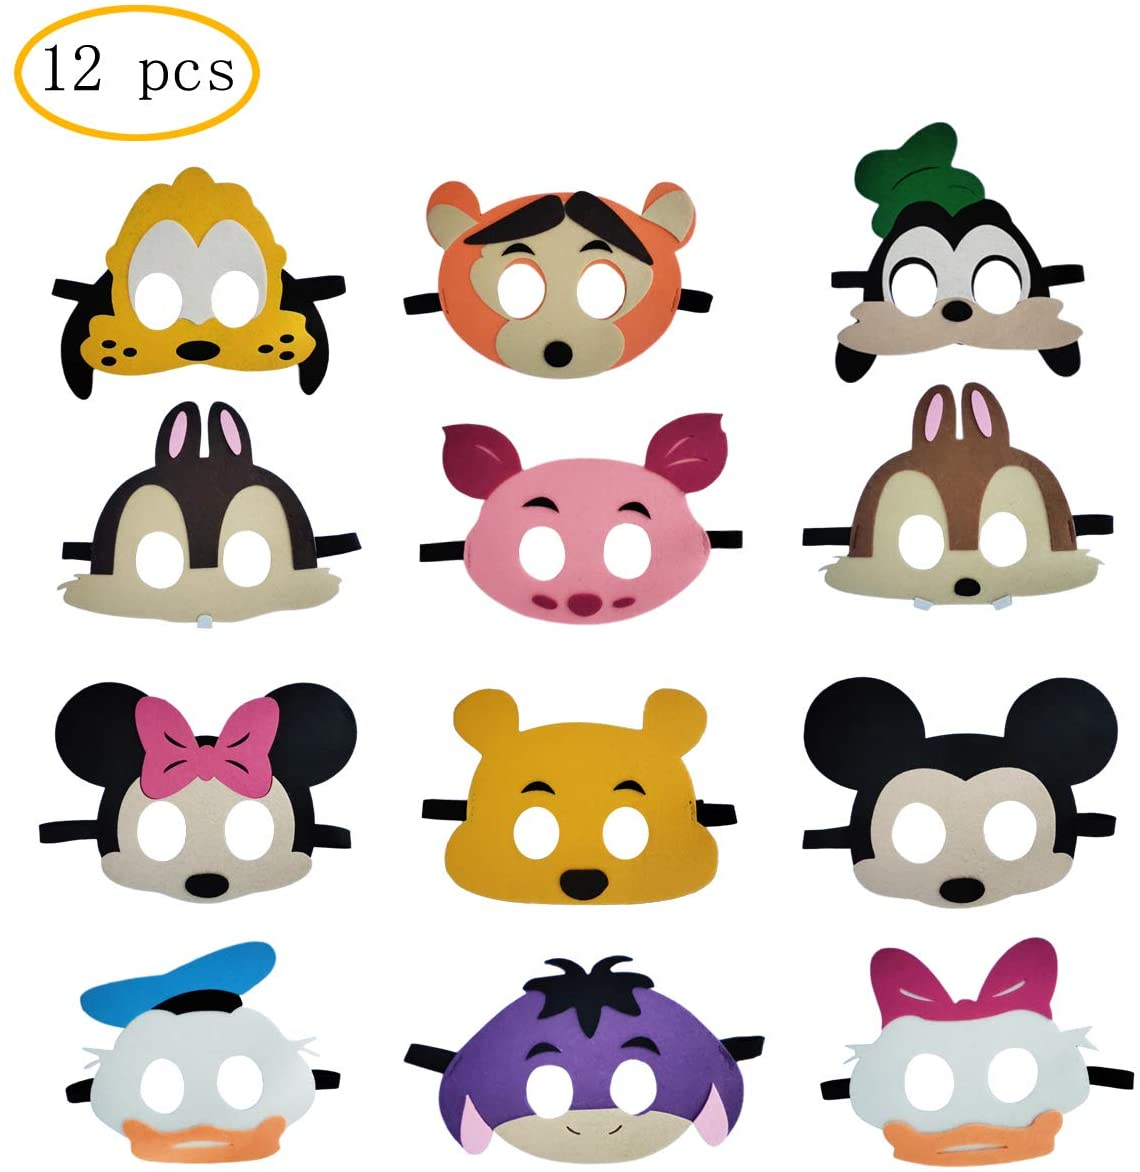 12 pcs Mickey Mouse Party Masks For Kids, Mickey theme party supplies, children's masked party props, photo booth props